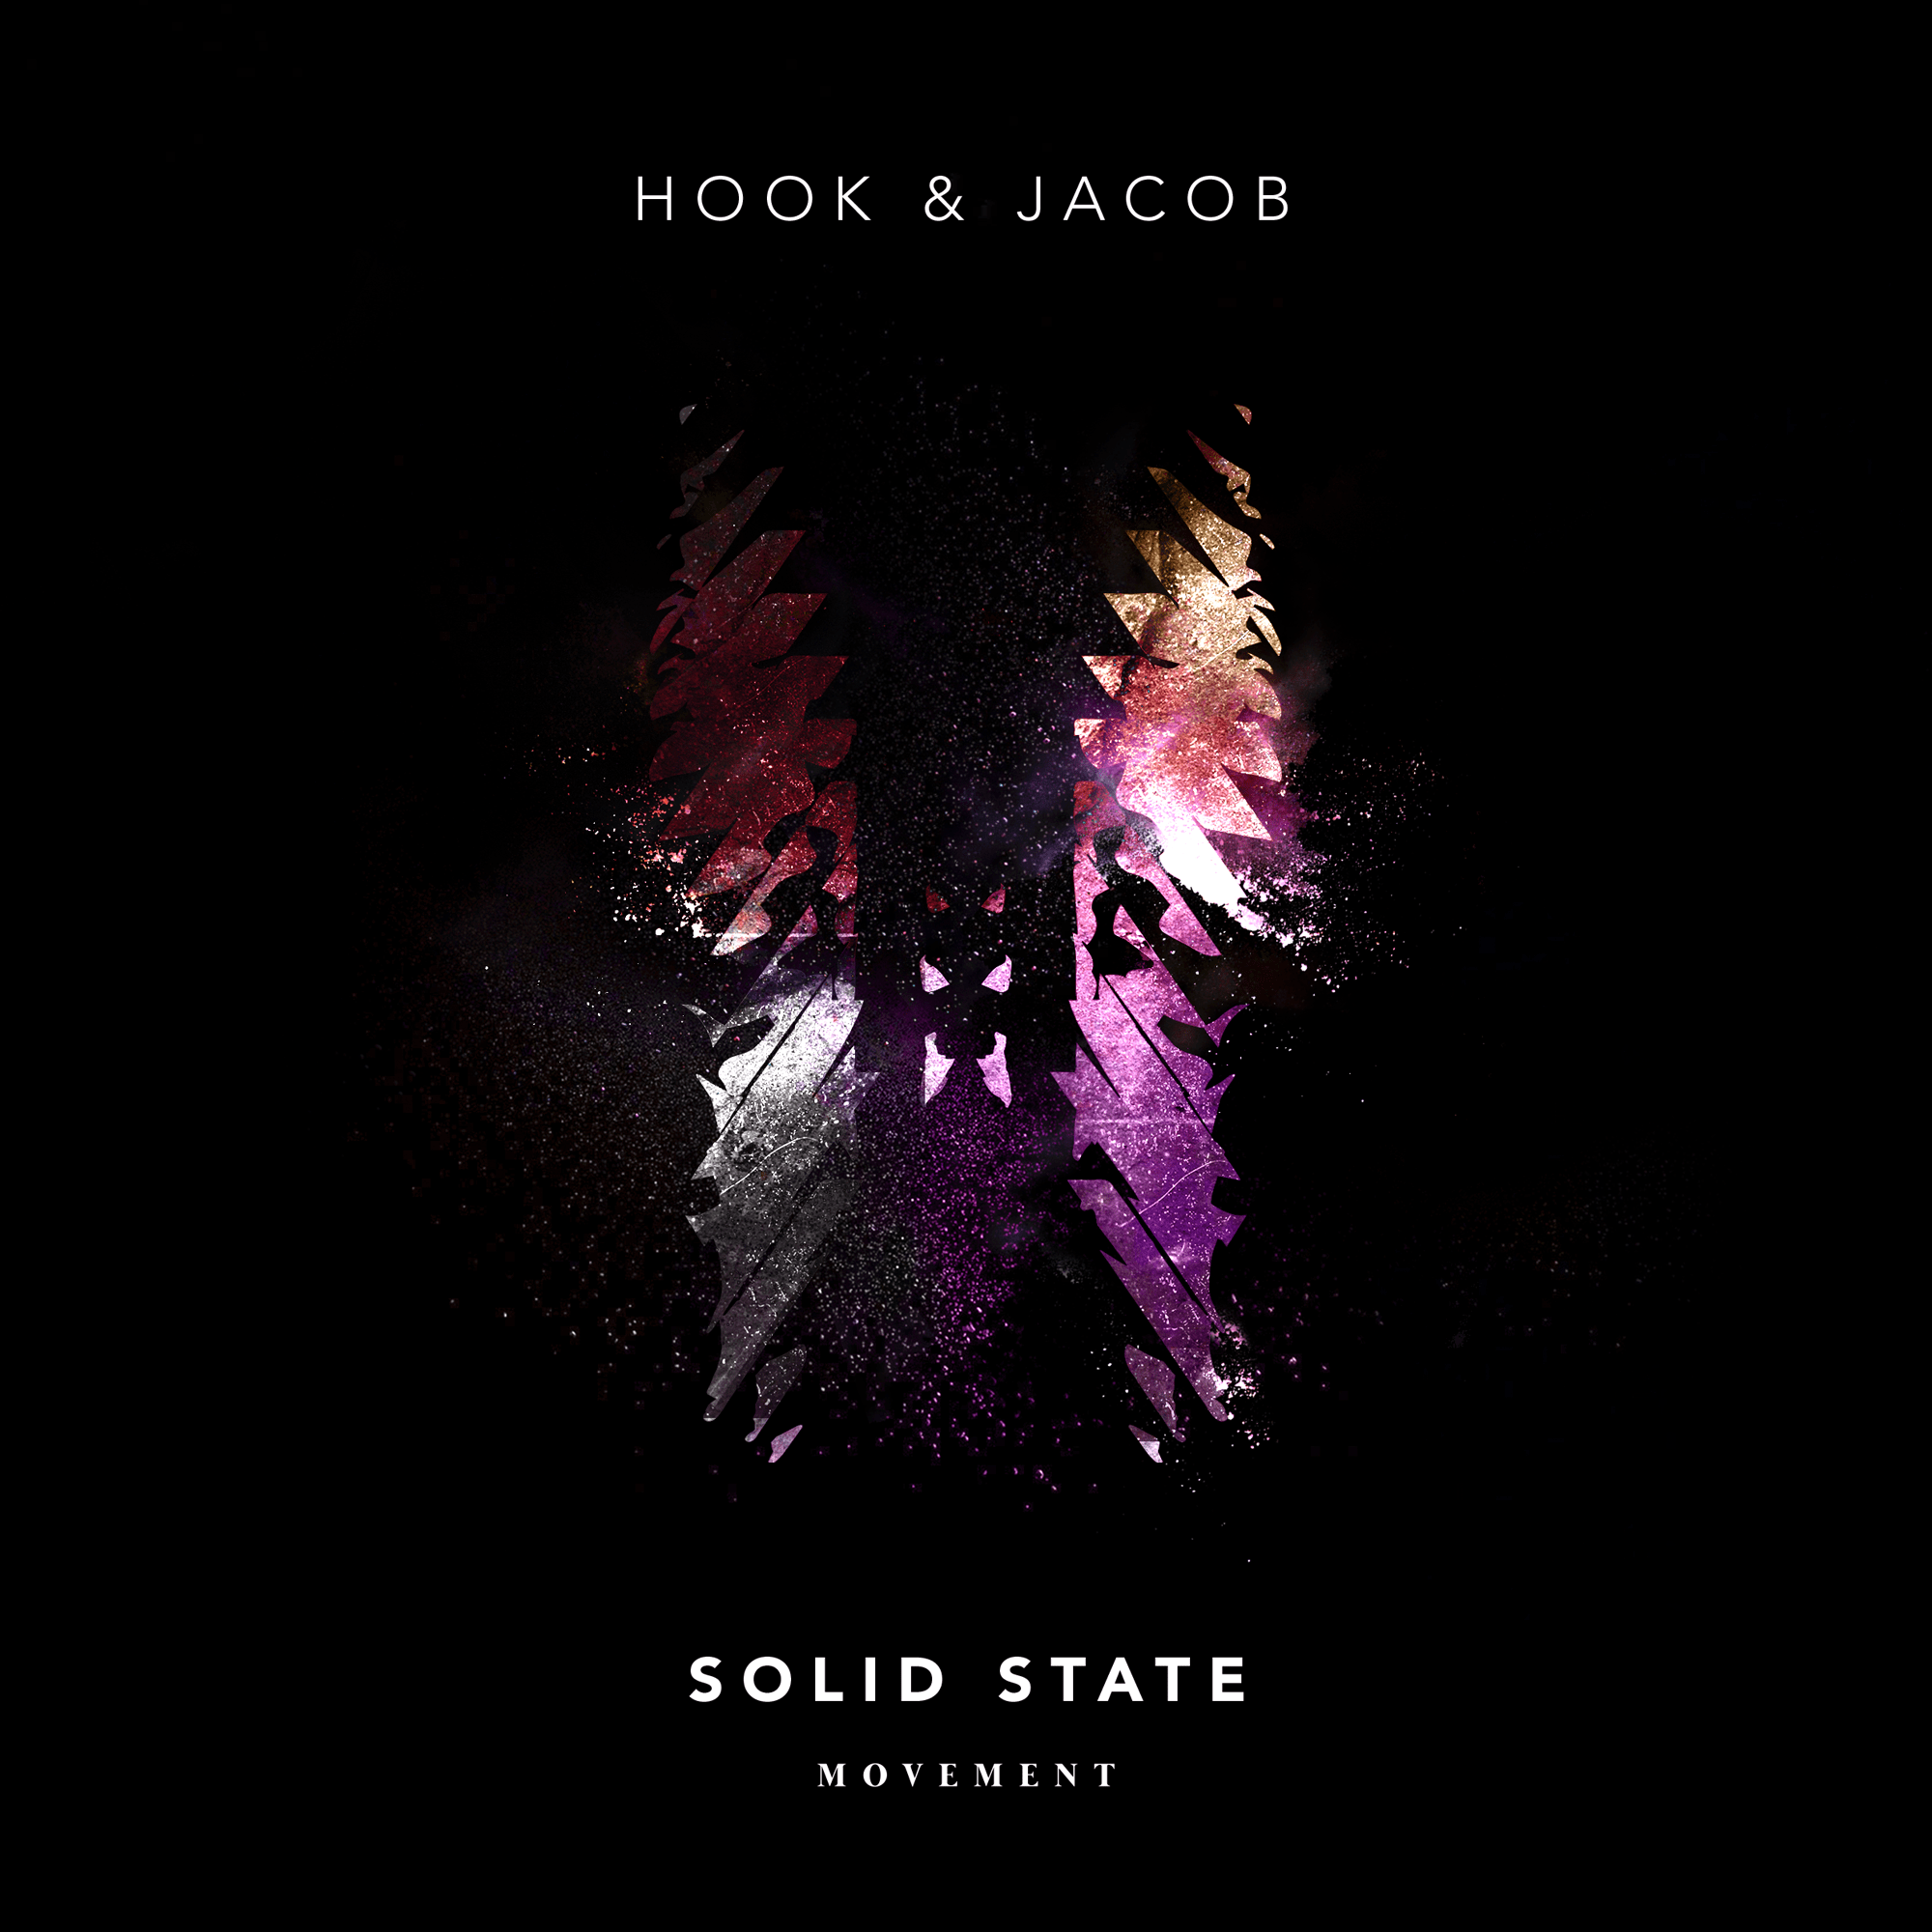 packshot-hookjacob-solidstate-movement.png